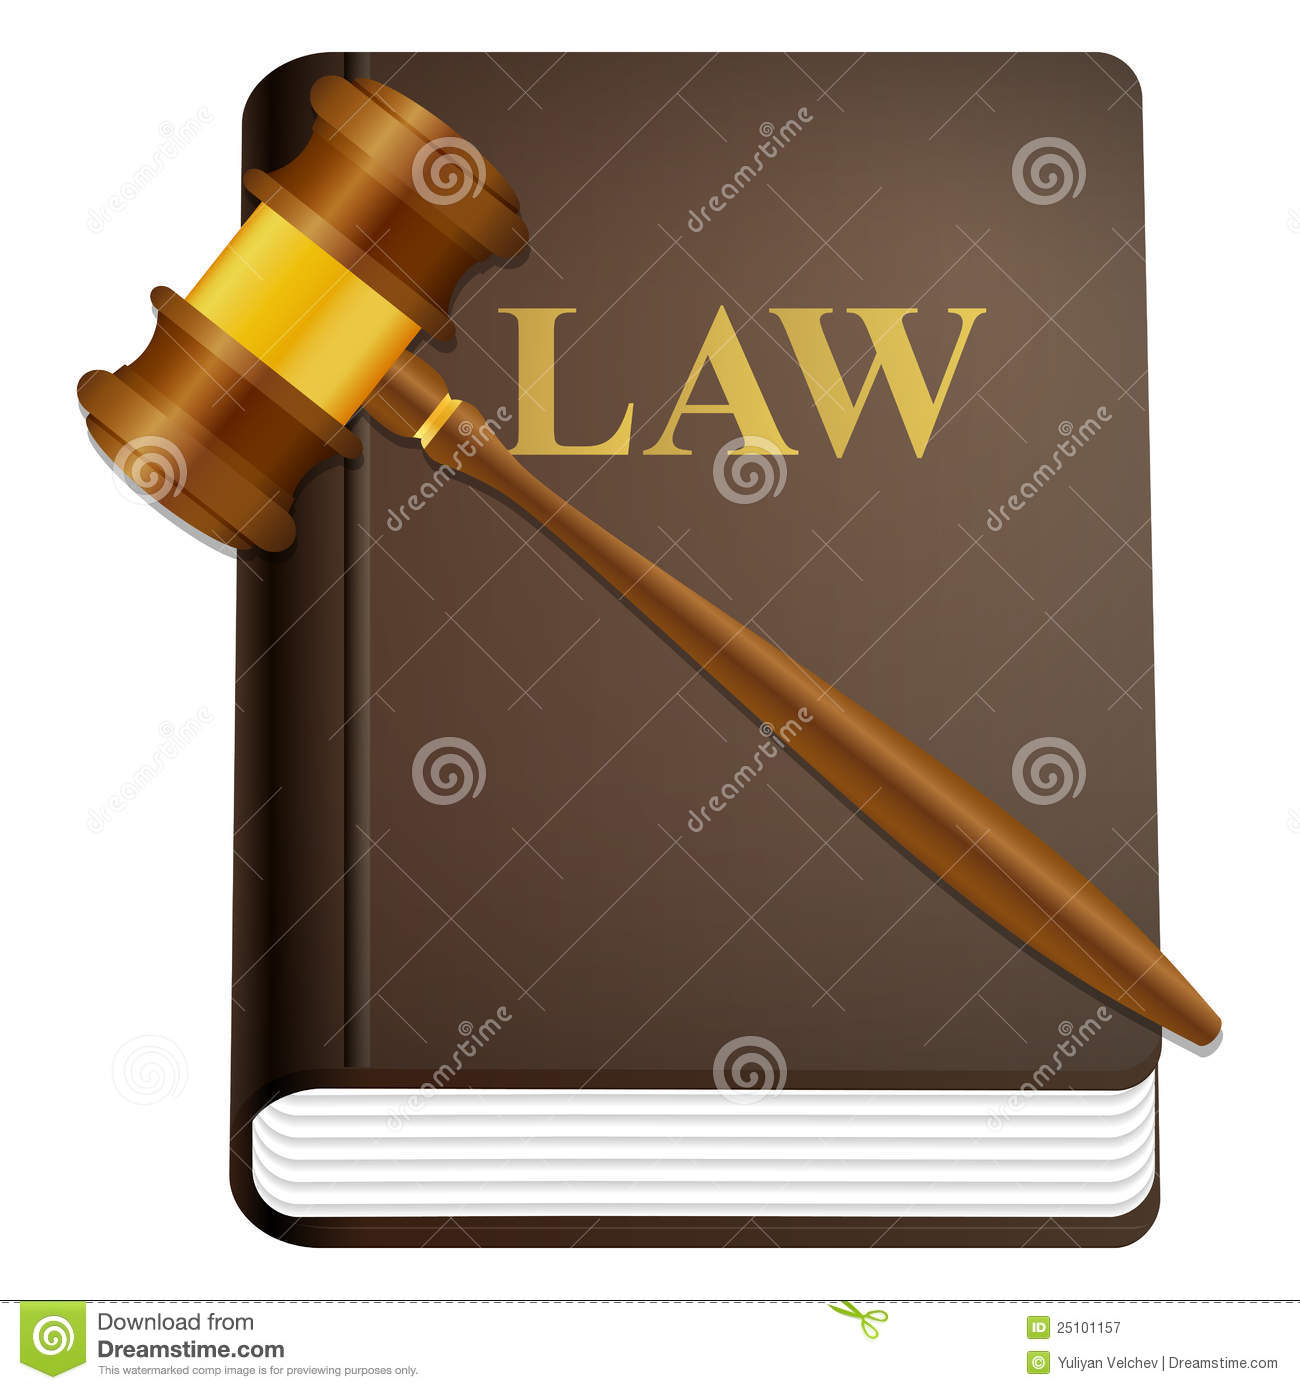 law book clipart - photo #15